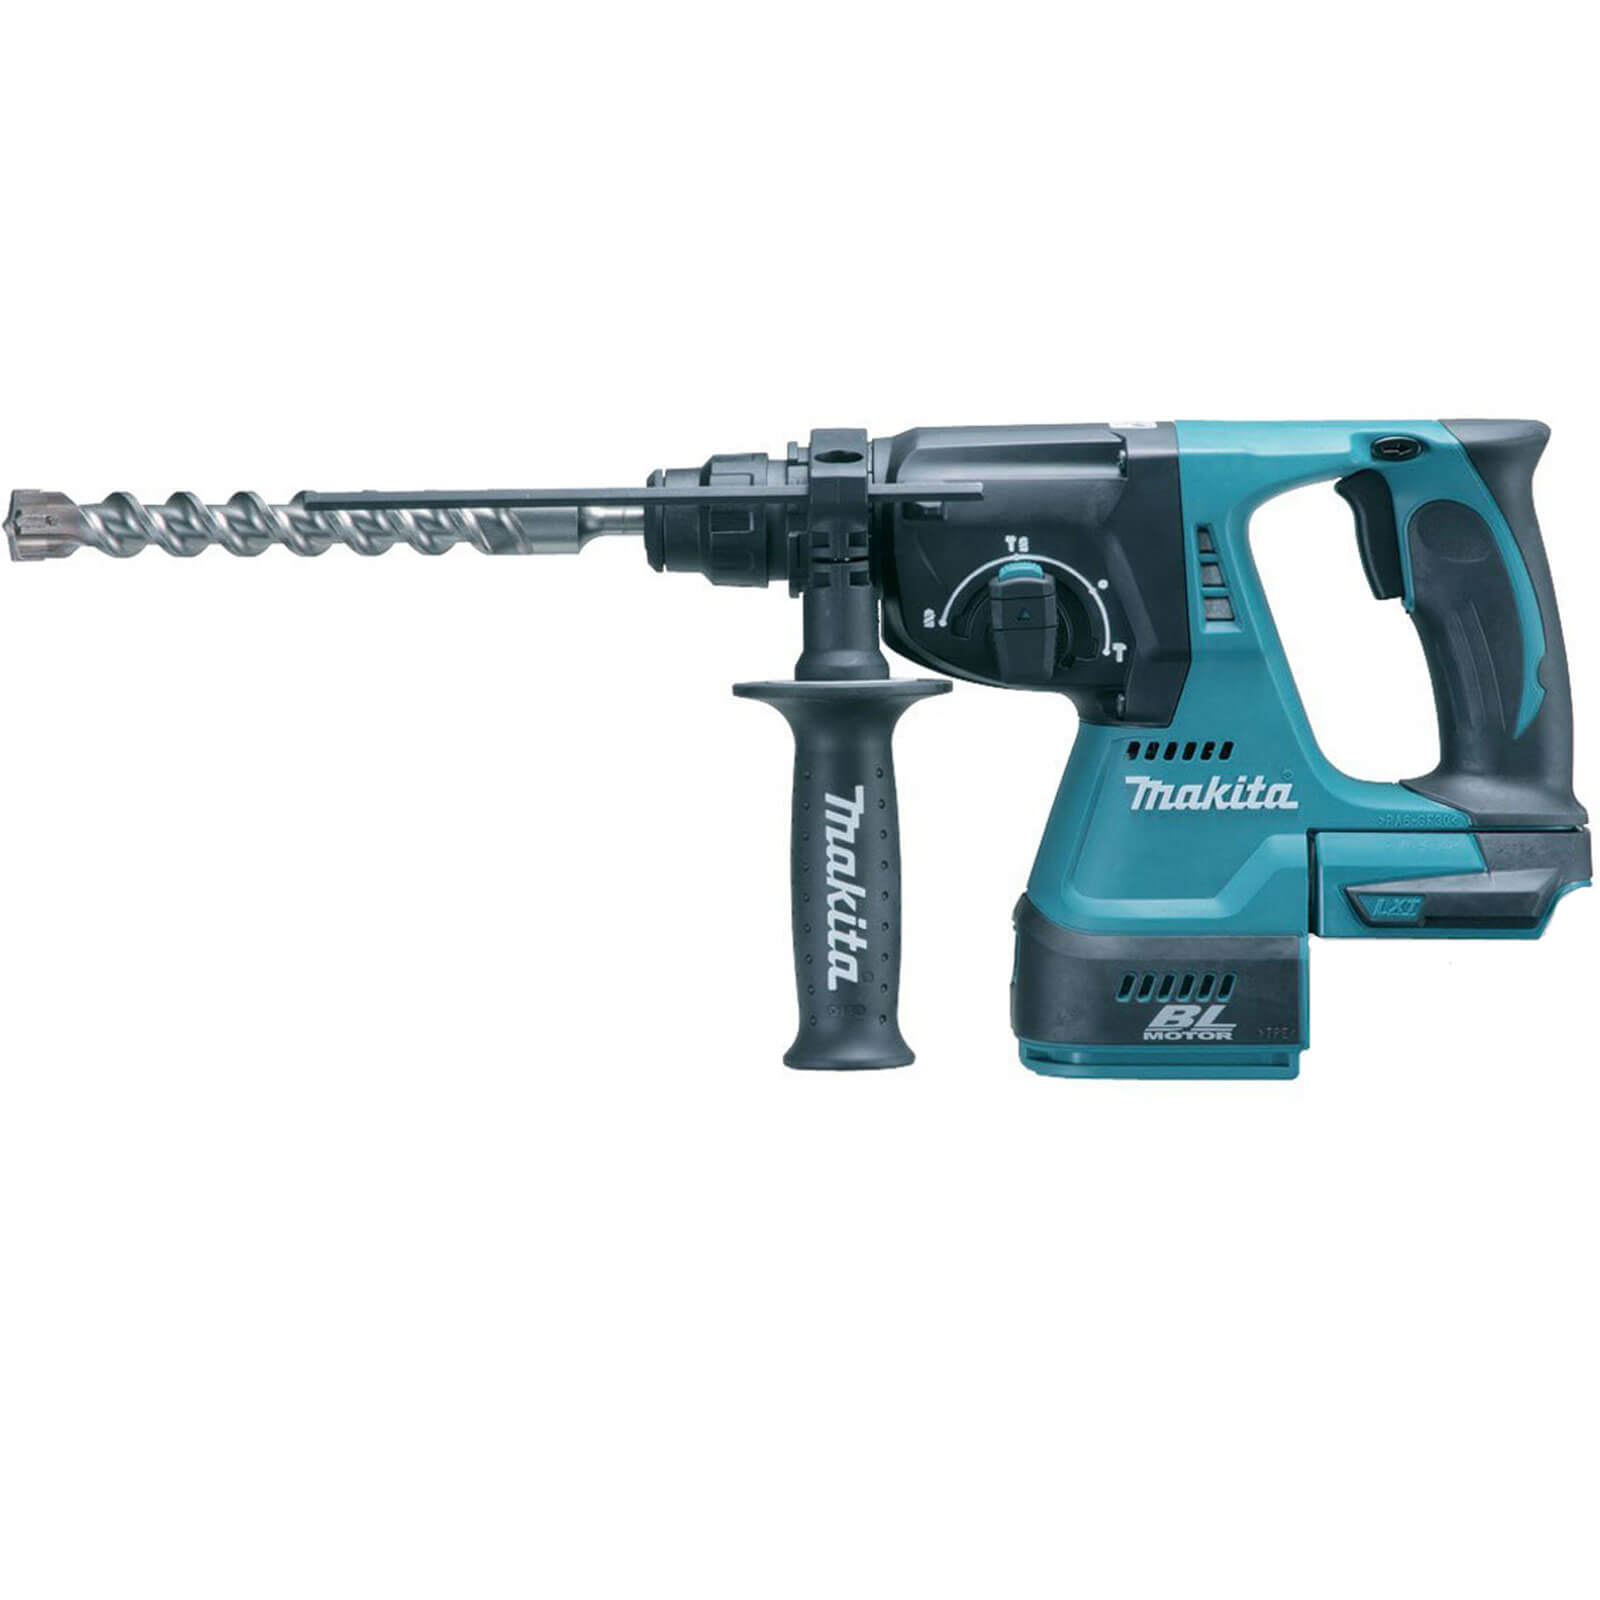 Makita DHR242Z 18v Cordless SDS Plus Rotary Hammer Drill without Battery or Charger